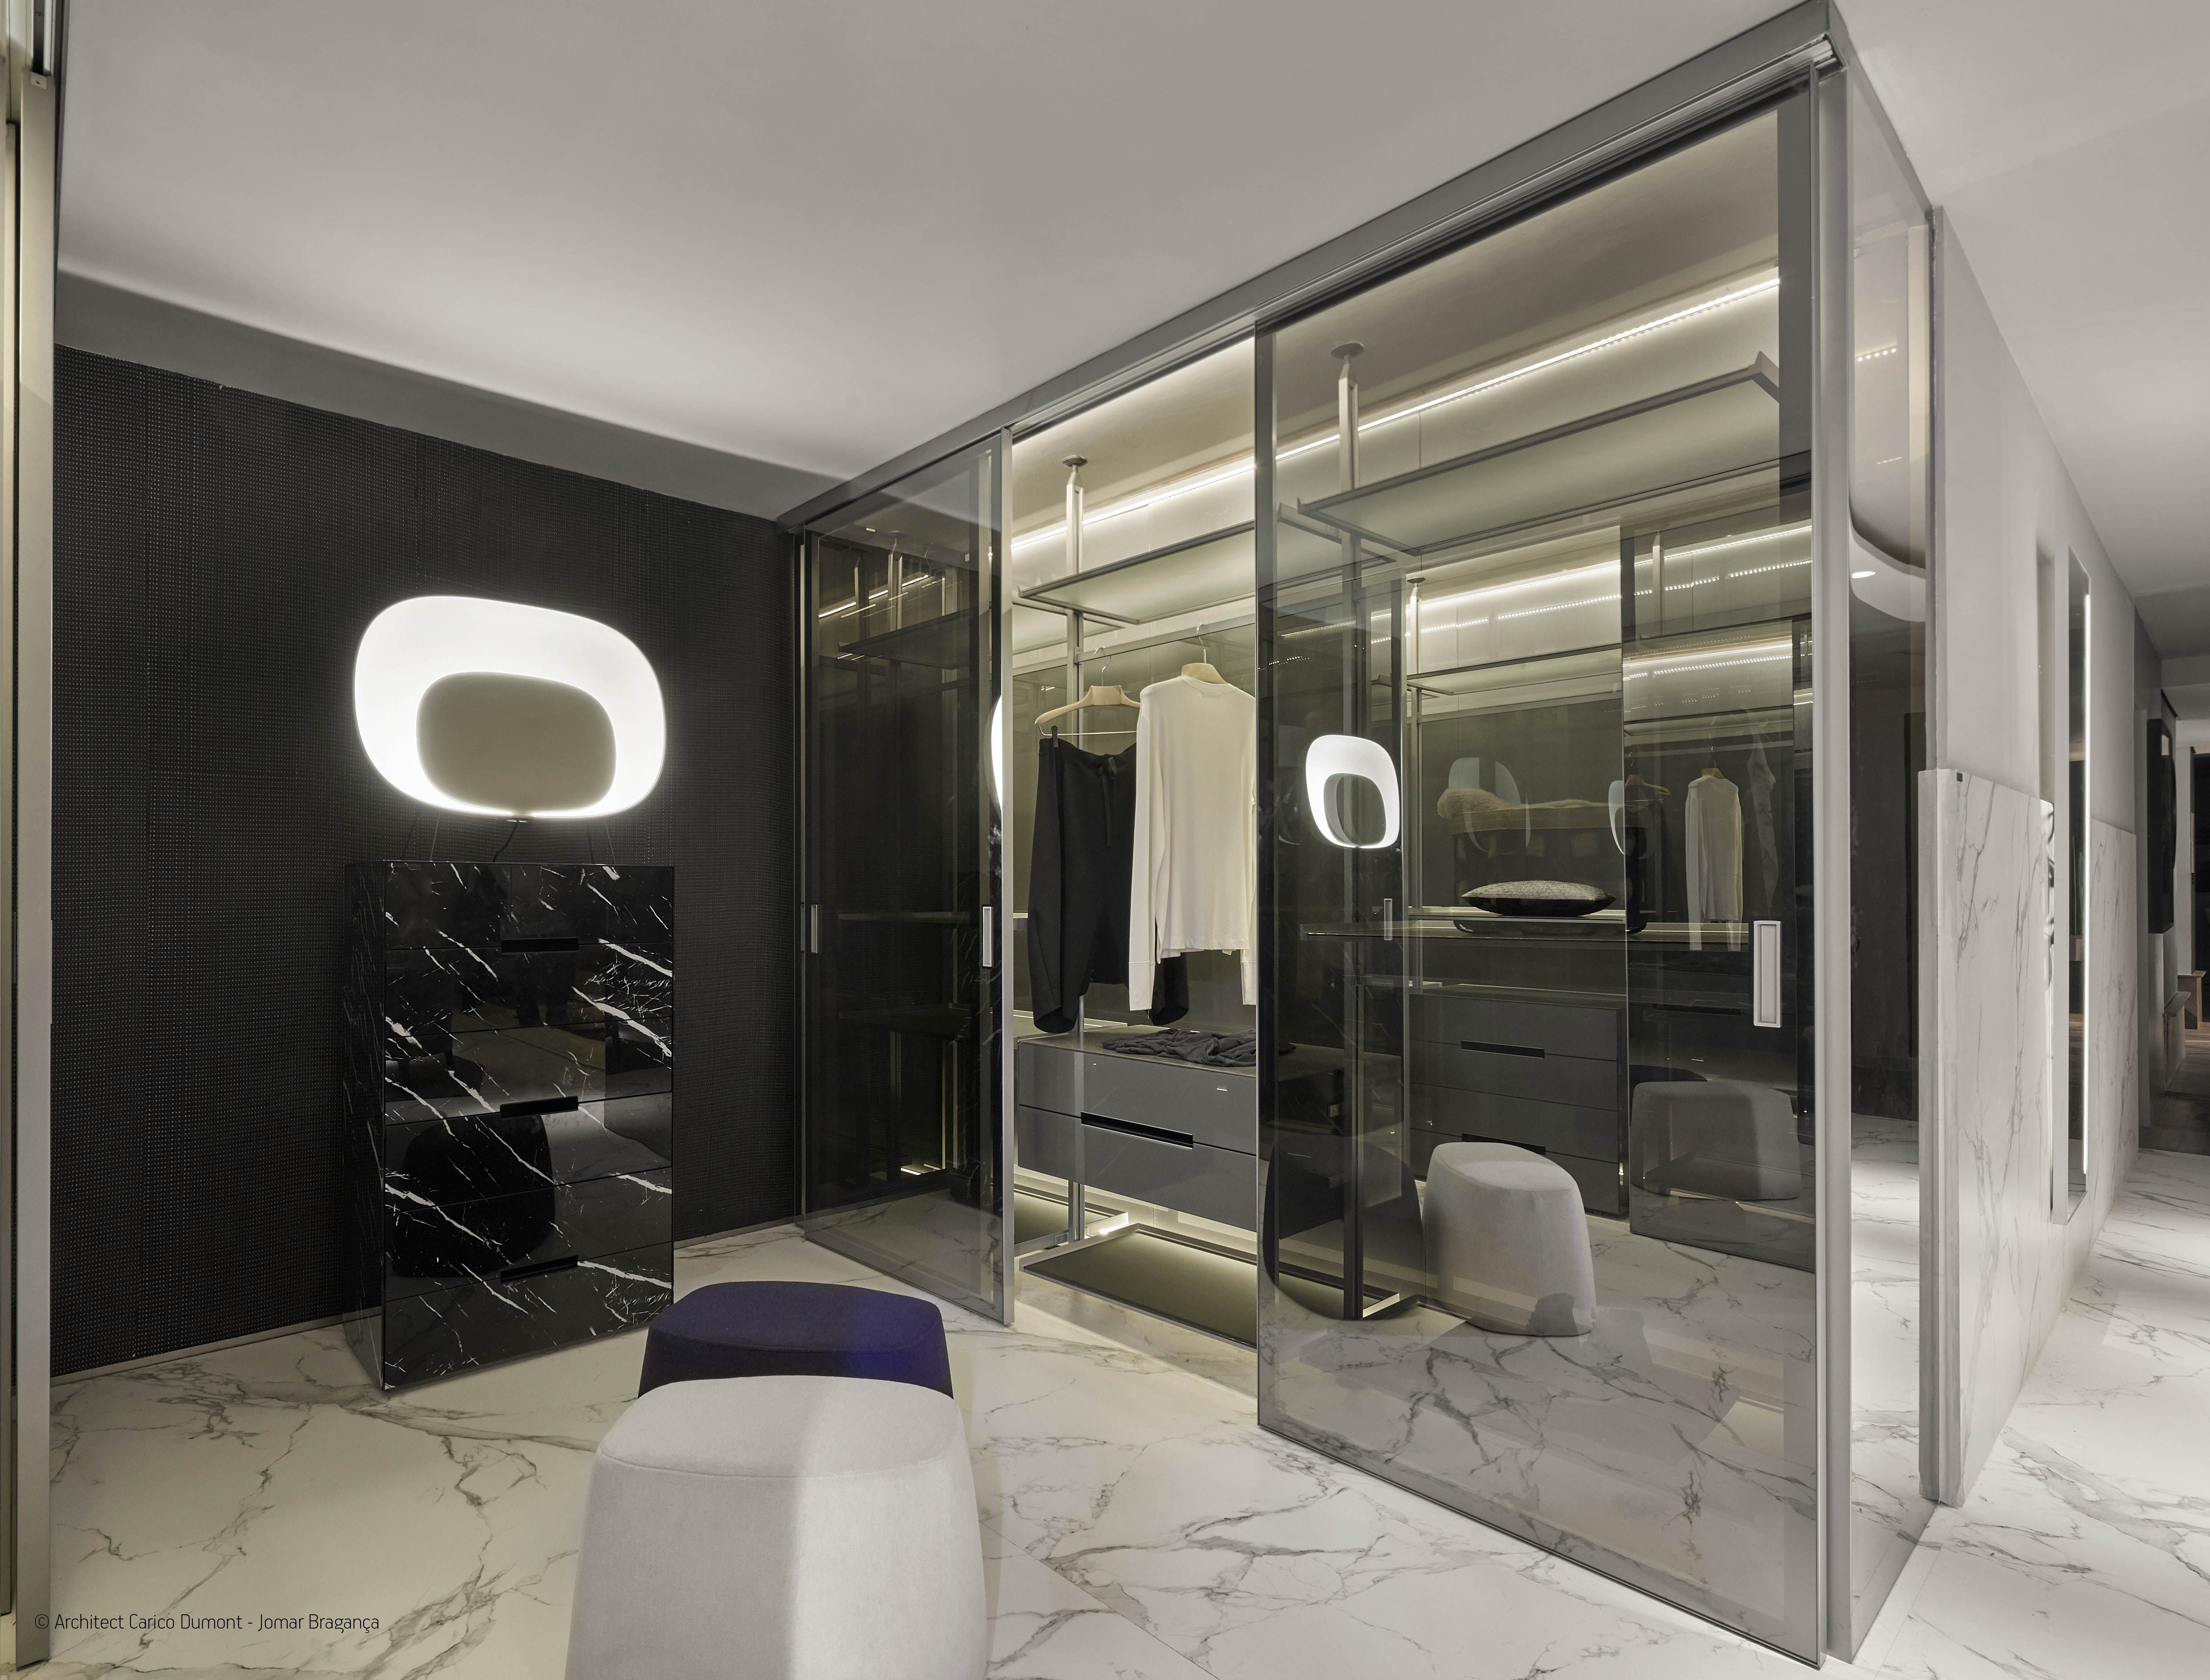 A dressing room featuring Dekton Aura means a dream come true! We feel in heaven in this inspiring design by the architects Carico Dumont. #interiordesign